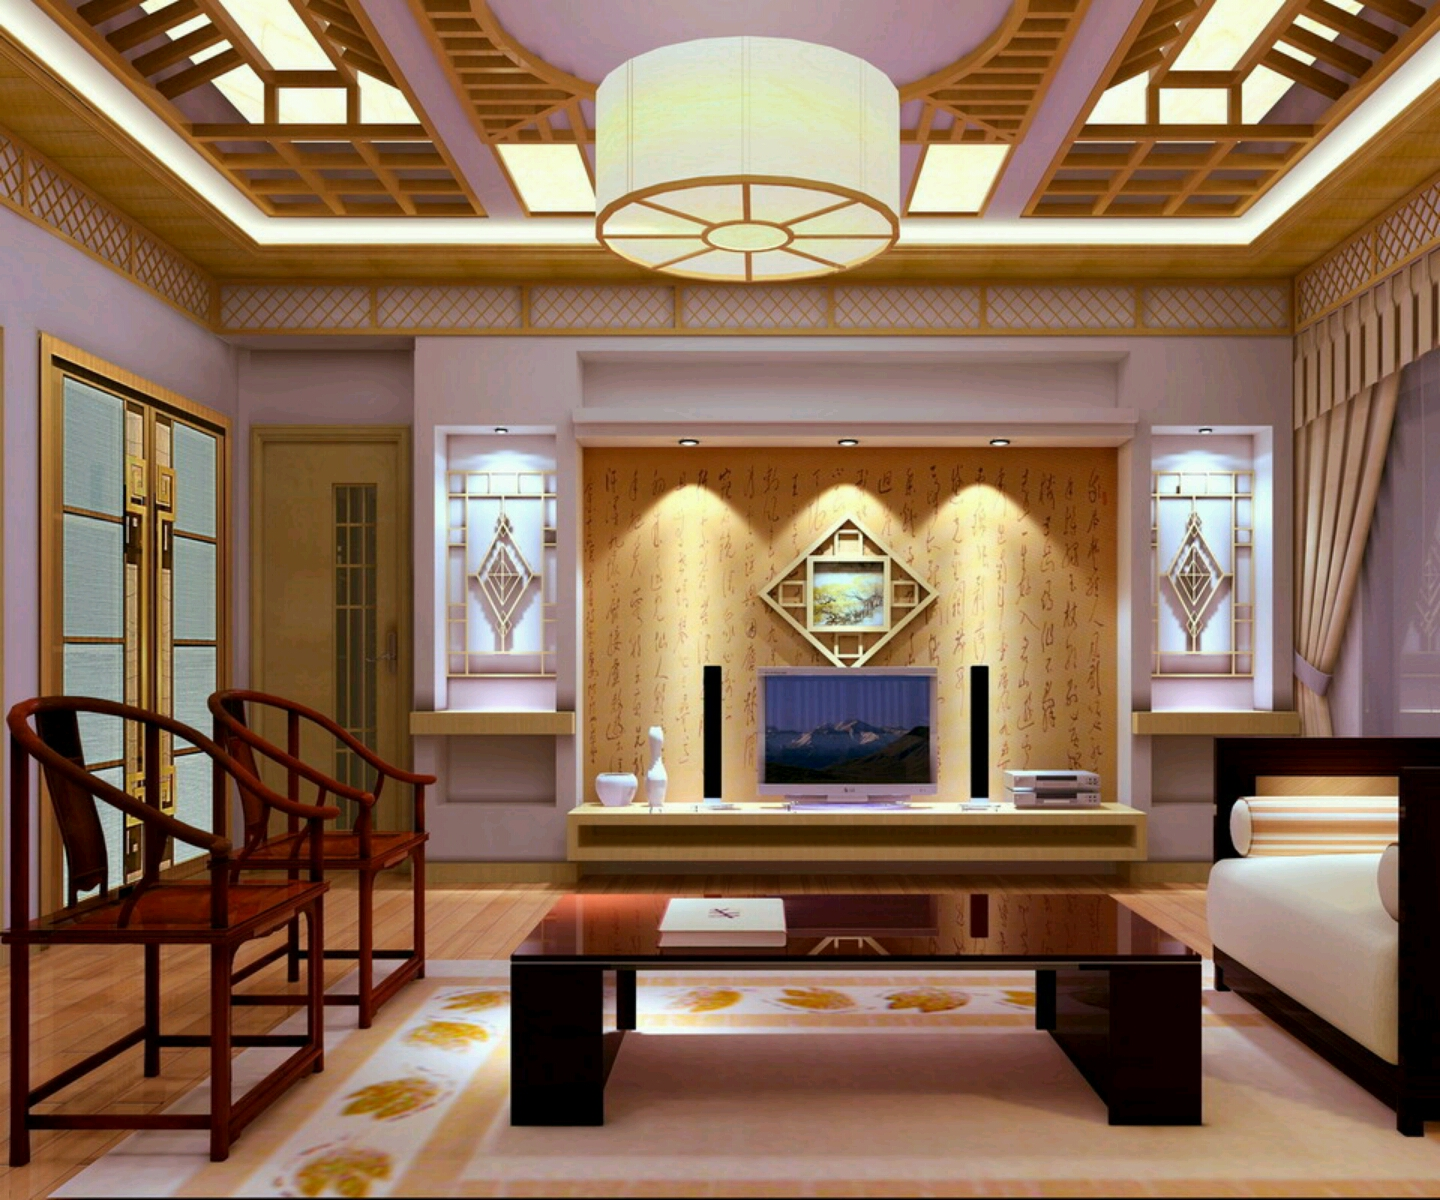 New home designs latest homes interior designs studyrooms for Latest home interior design